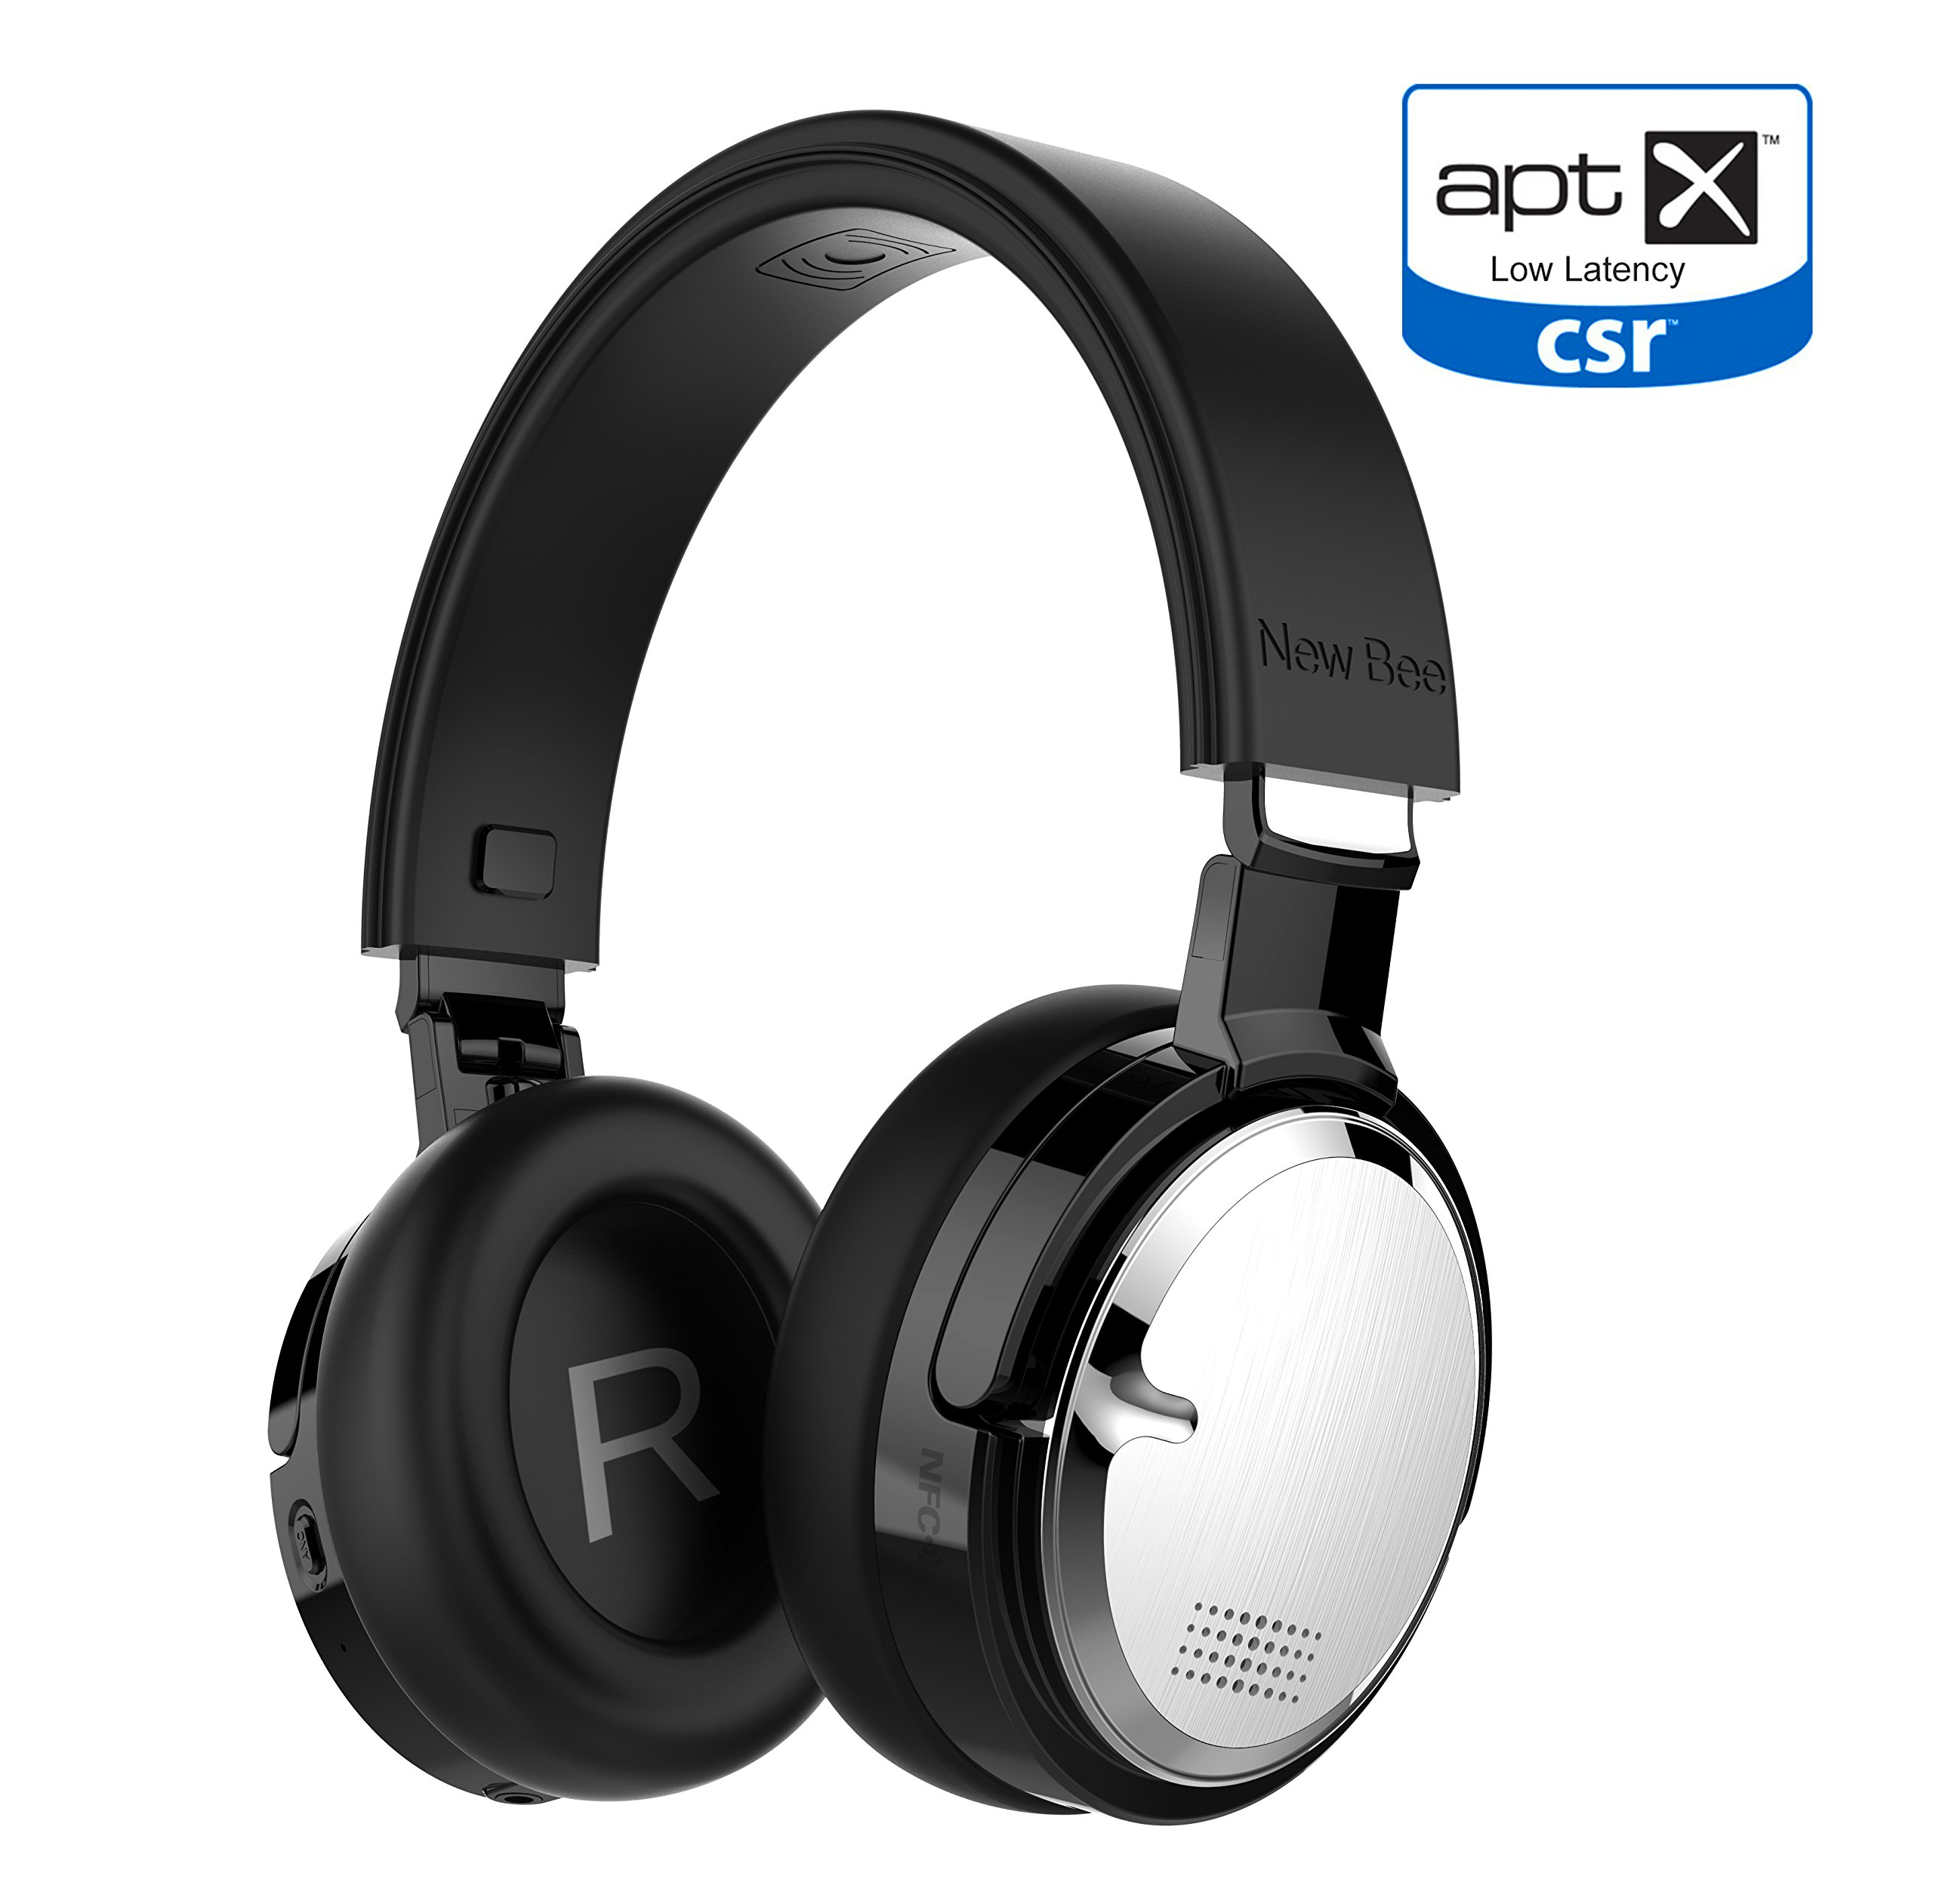 Wireless Charging Bluetooth Headphone New Bee Active Noise Cancelling Headphones with Microphone Hi-Fi Deep Bass Stereo Wireless Headphones Over Ear 60H Playtime for Travel Work TV Computer Iphone